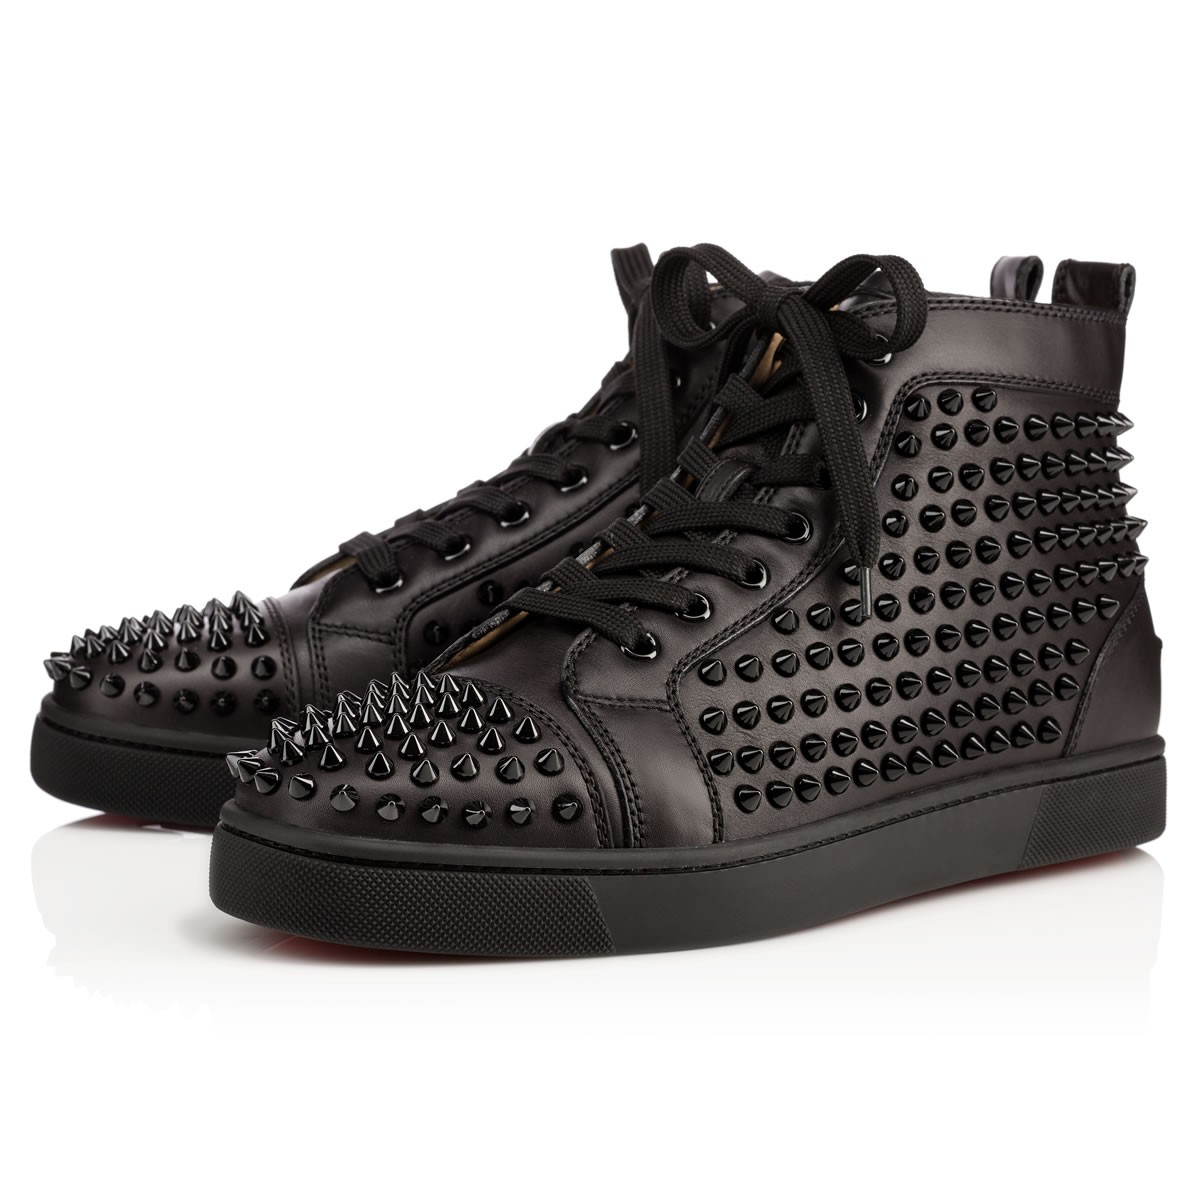 84035ac53dbb1 Louis Spikes Men s Flat Black Black Bk Leather - Men Shoes - Christian  Louboutin